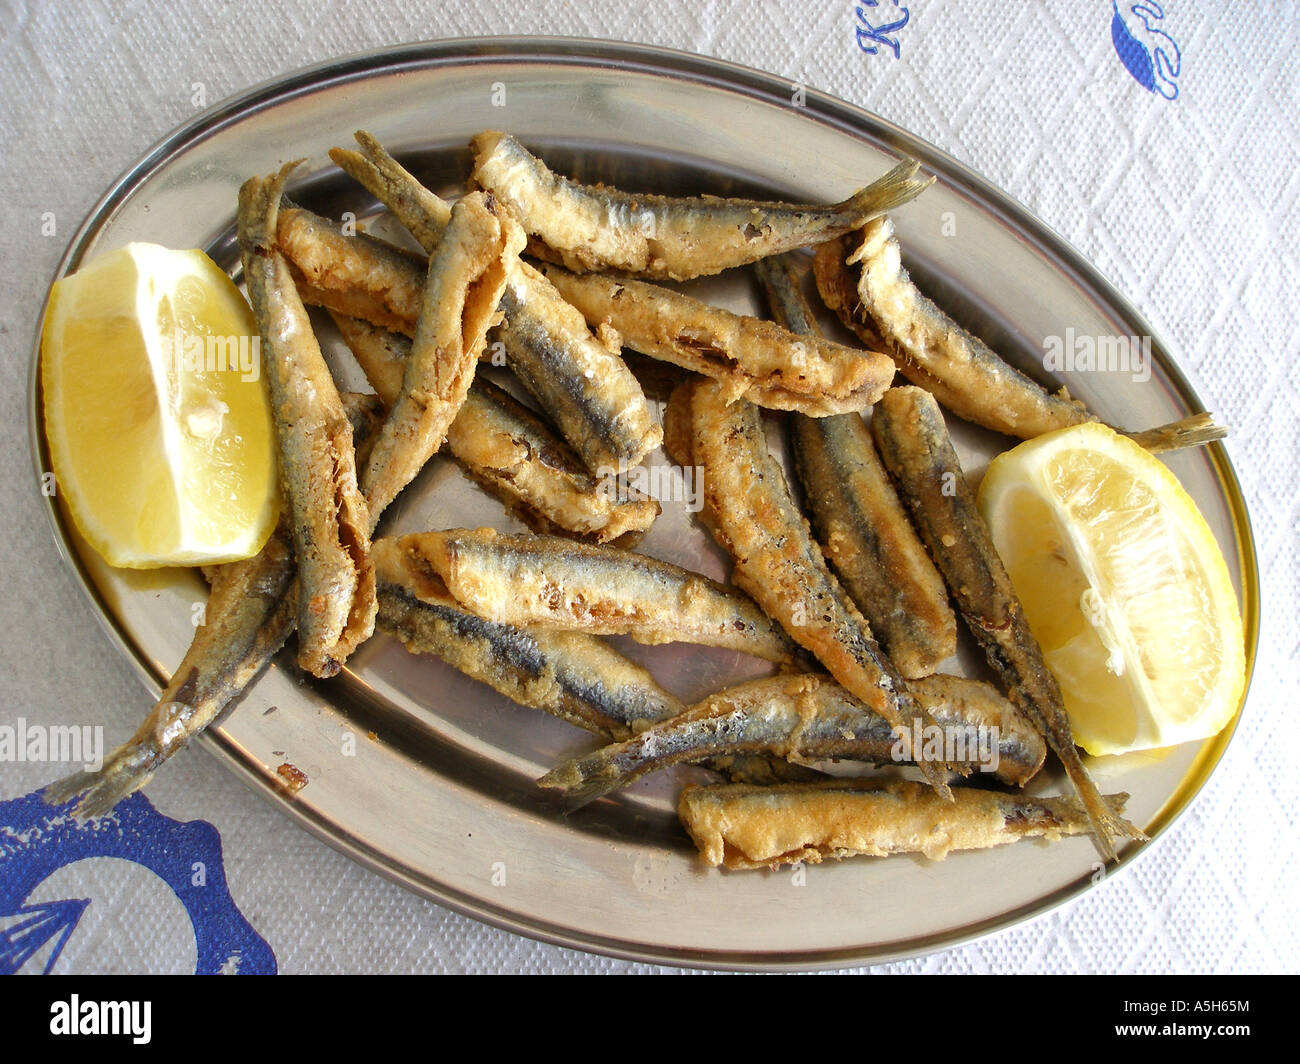 Gavros, Small Fish Used In Greek Cuisine Stock Photo